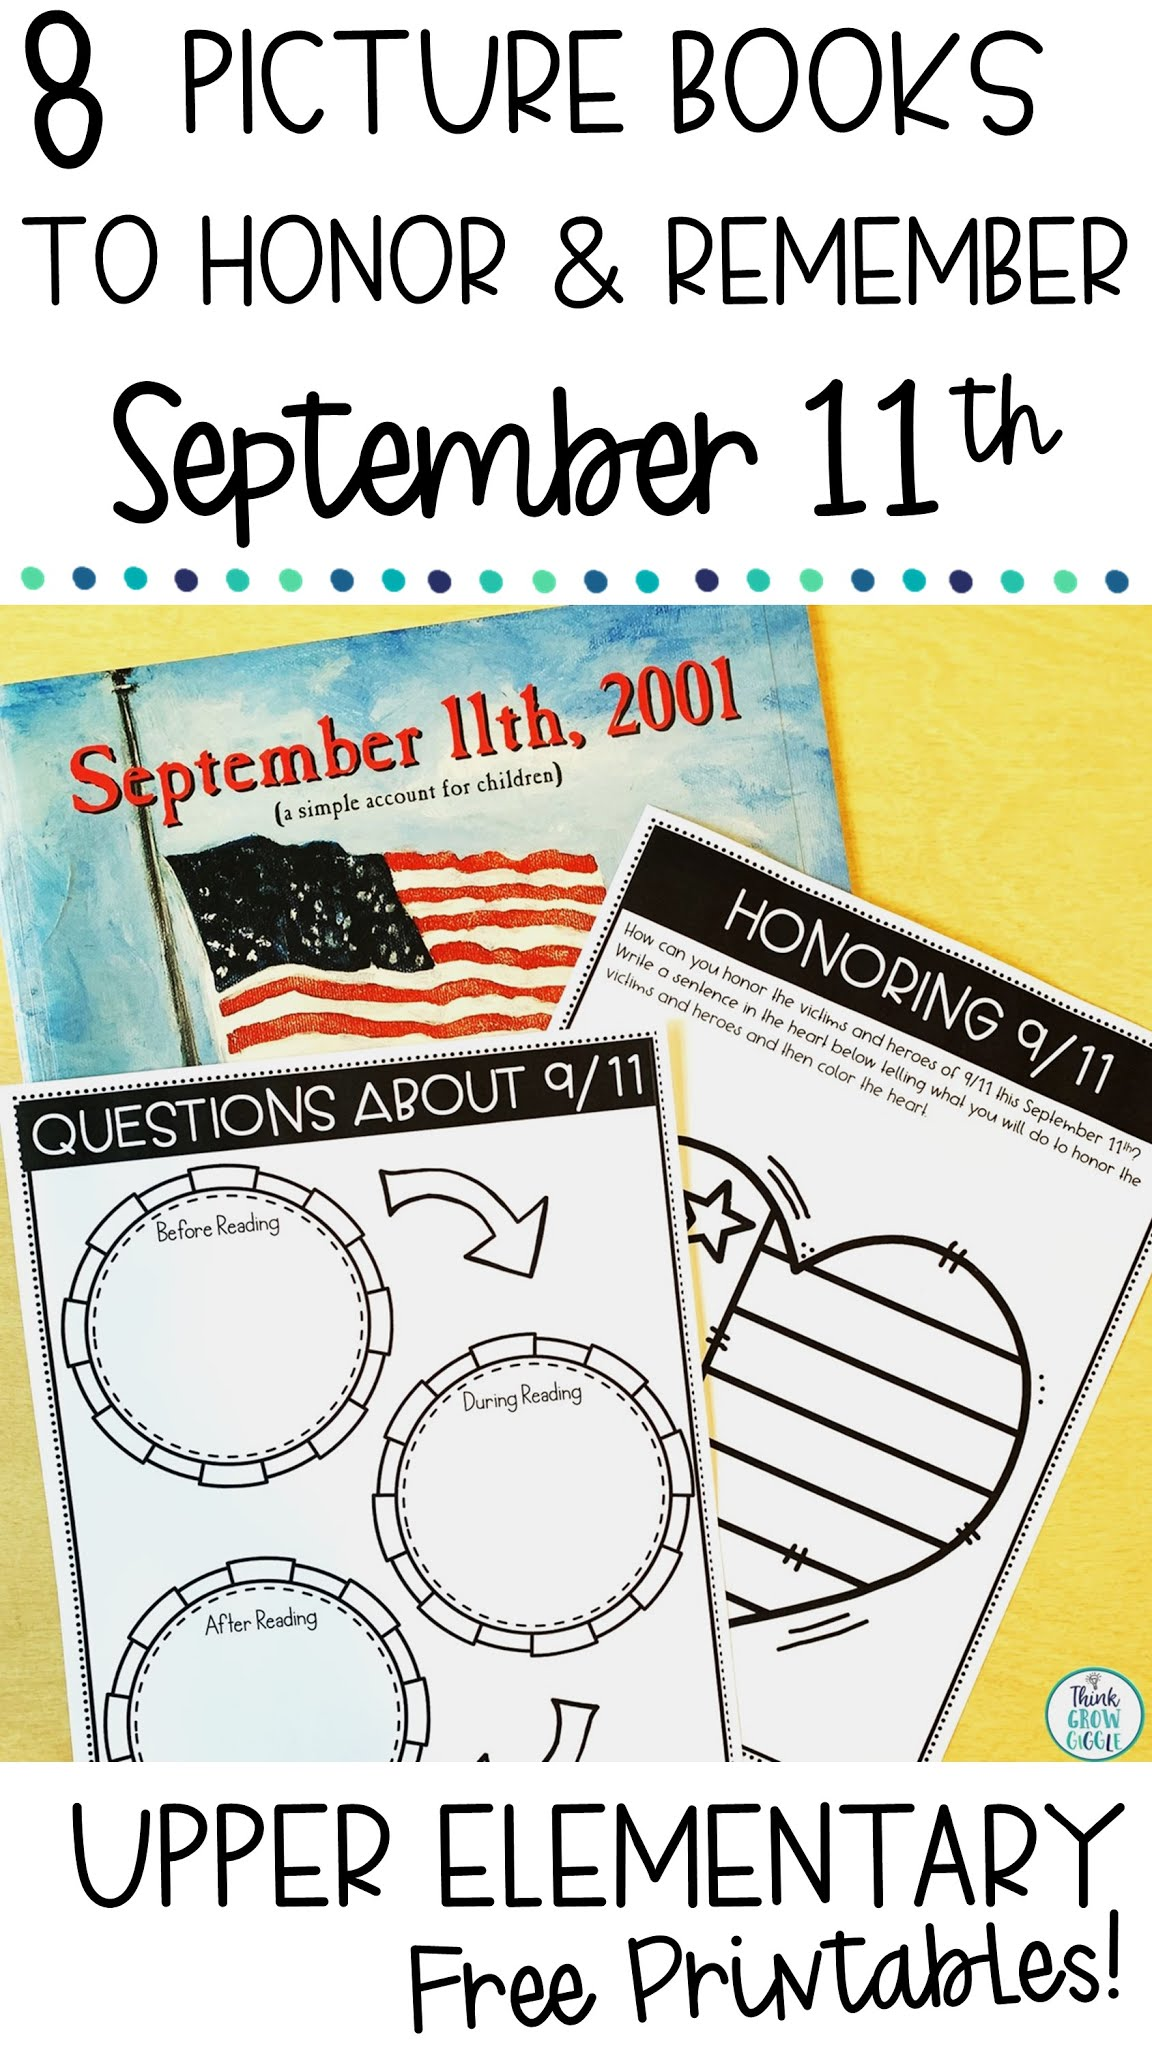 september 11th picture books and activities upper elementary